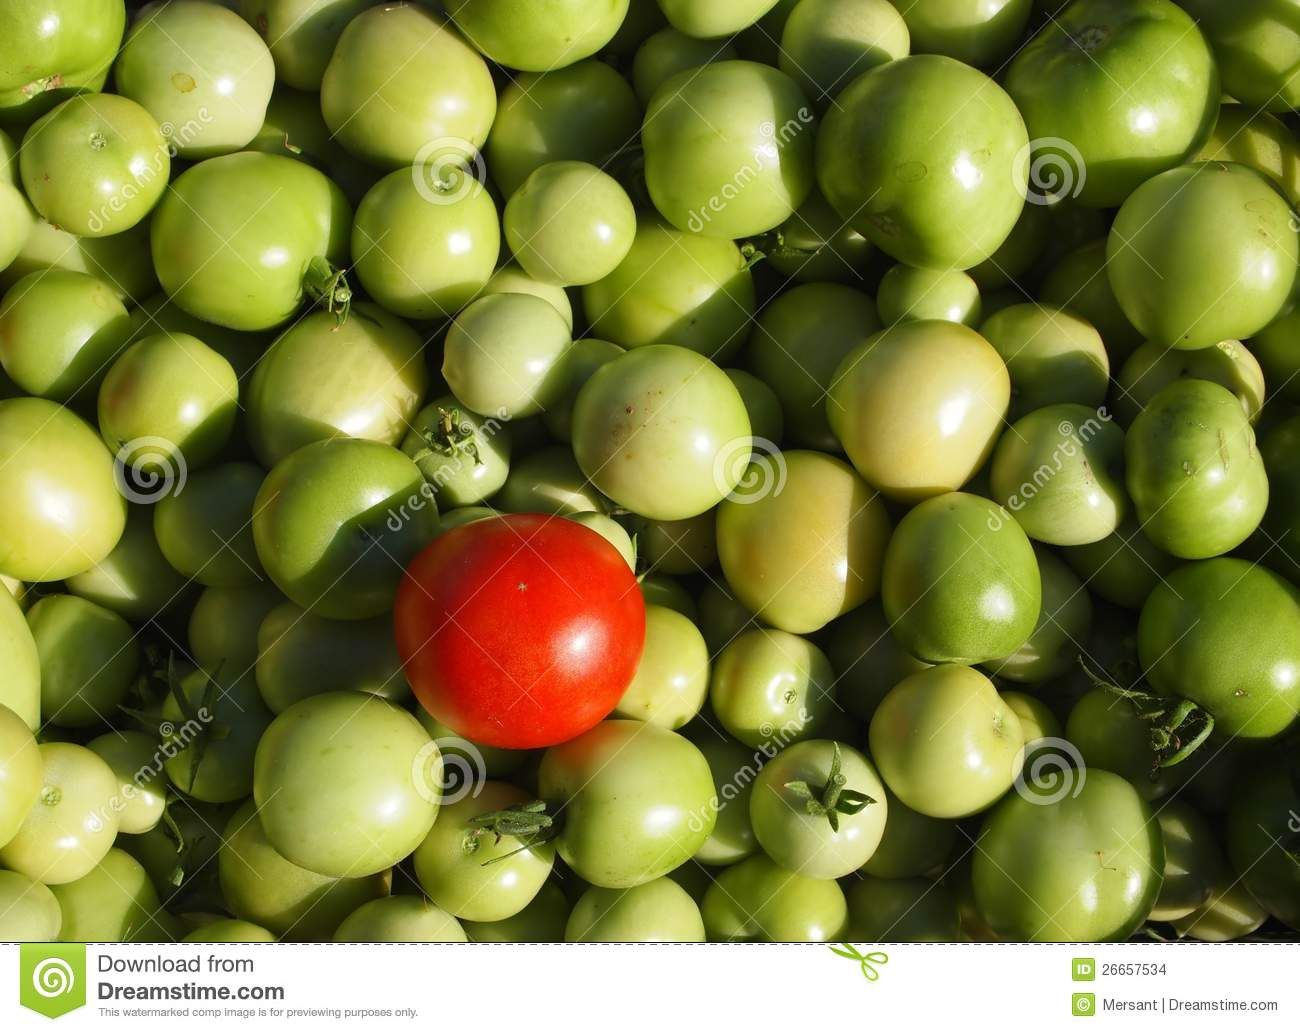 Many green tomatoes and one red tomato